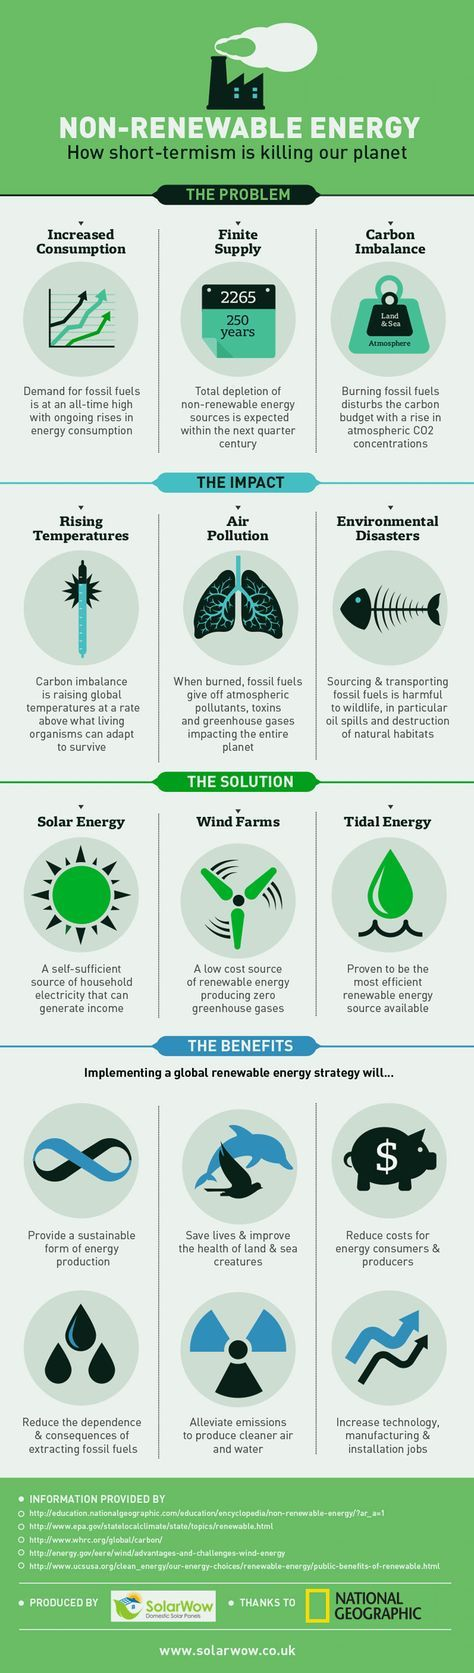 renewable energy, non-renewable energy, infographic, what is short-termism, short-term energy, why we need renewable energy, importance of renewable energy, what is renewable energy, what is non-renewable energy, clean energy, green power, renewable energy infographic, non-renewable energy infographic